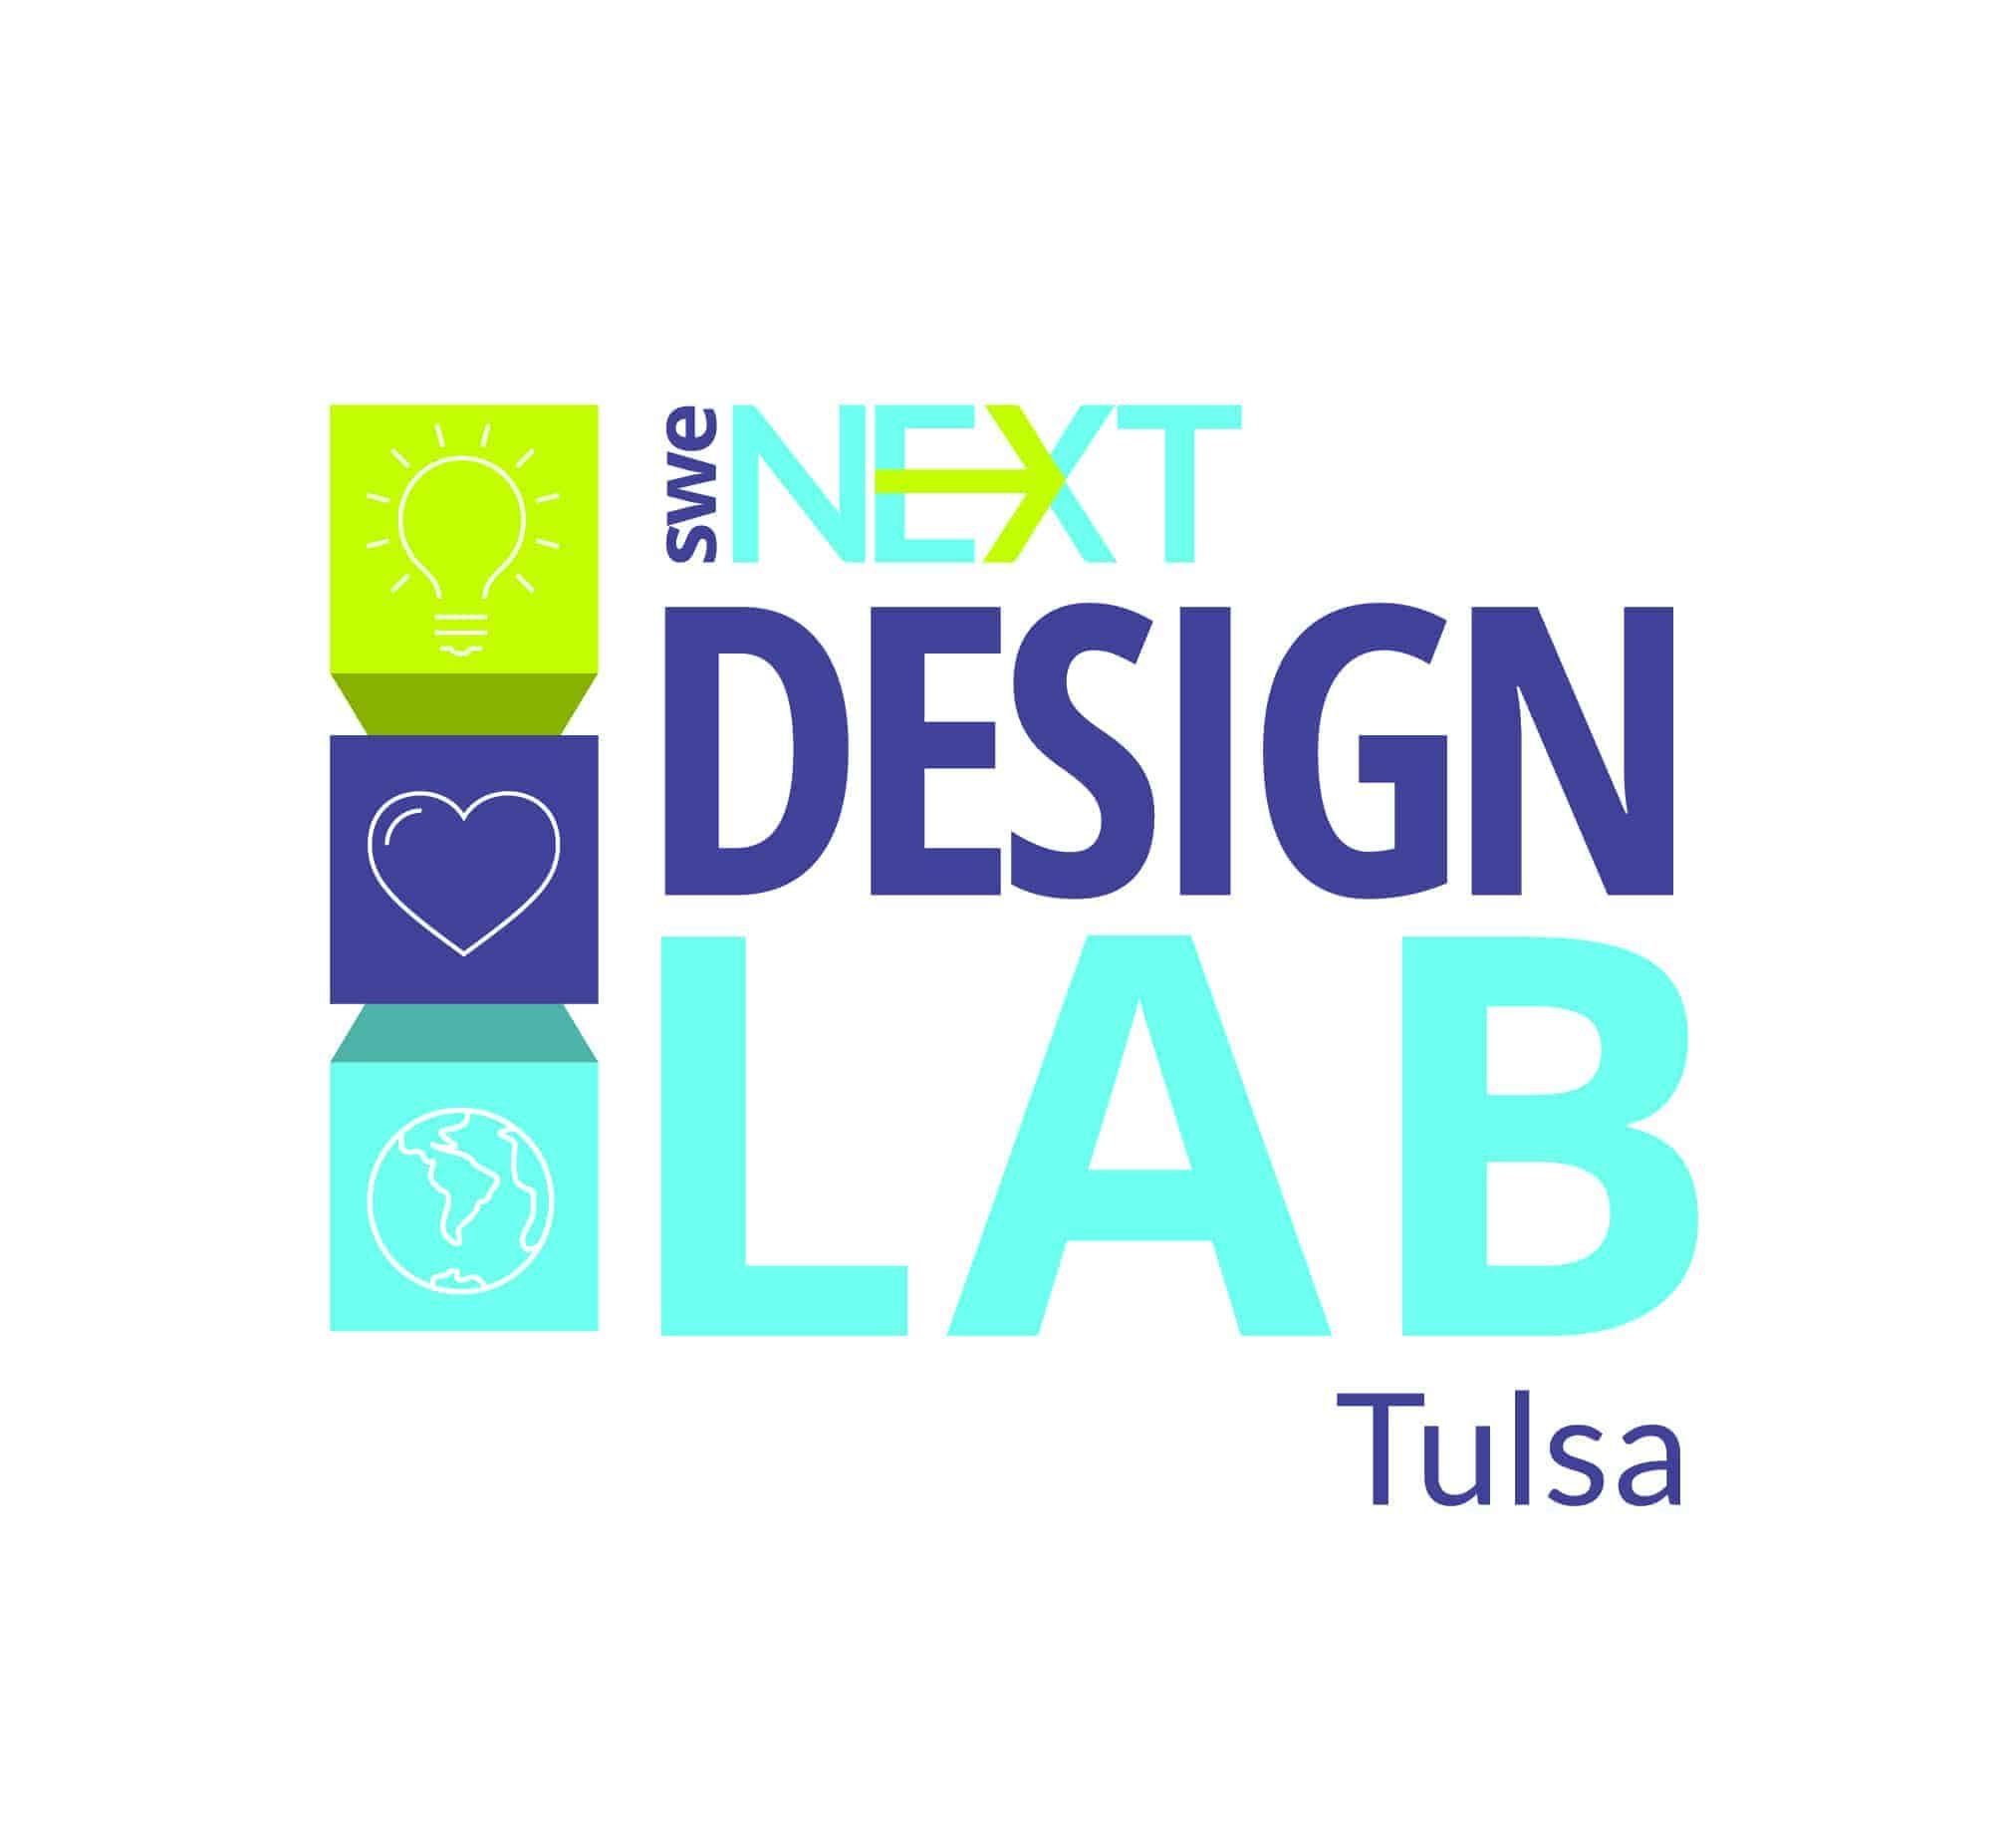 Video: Learn about SWENext DesignLab Tulsa, Saturday, January 27